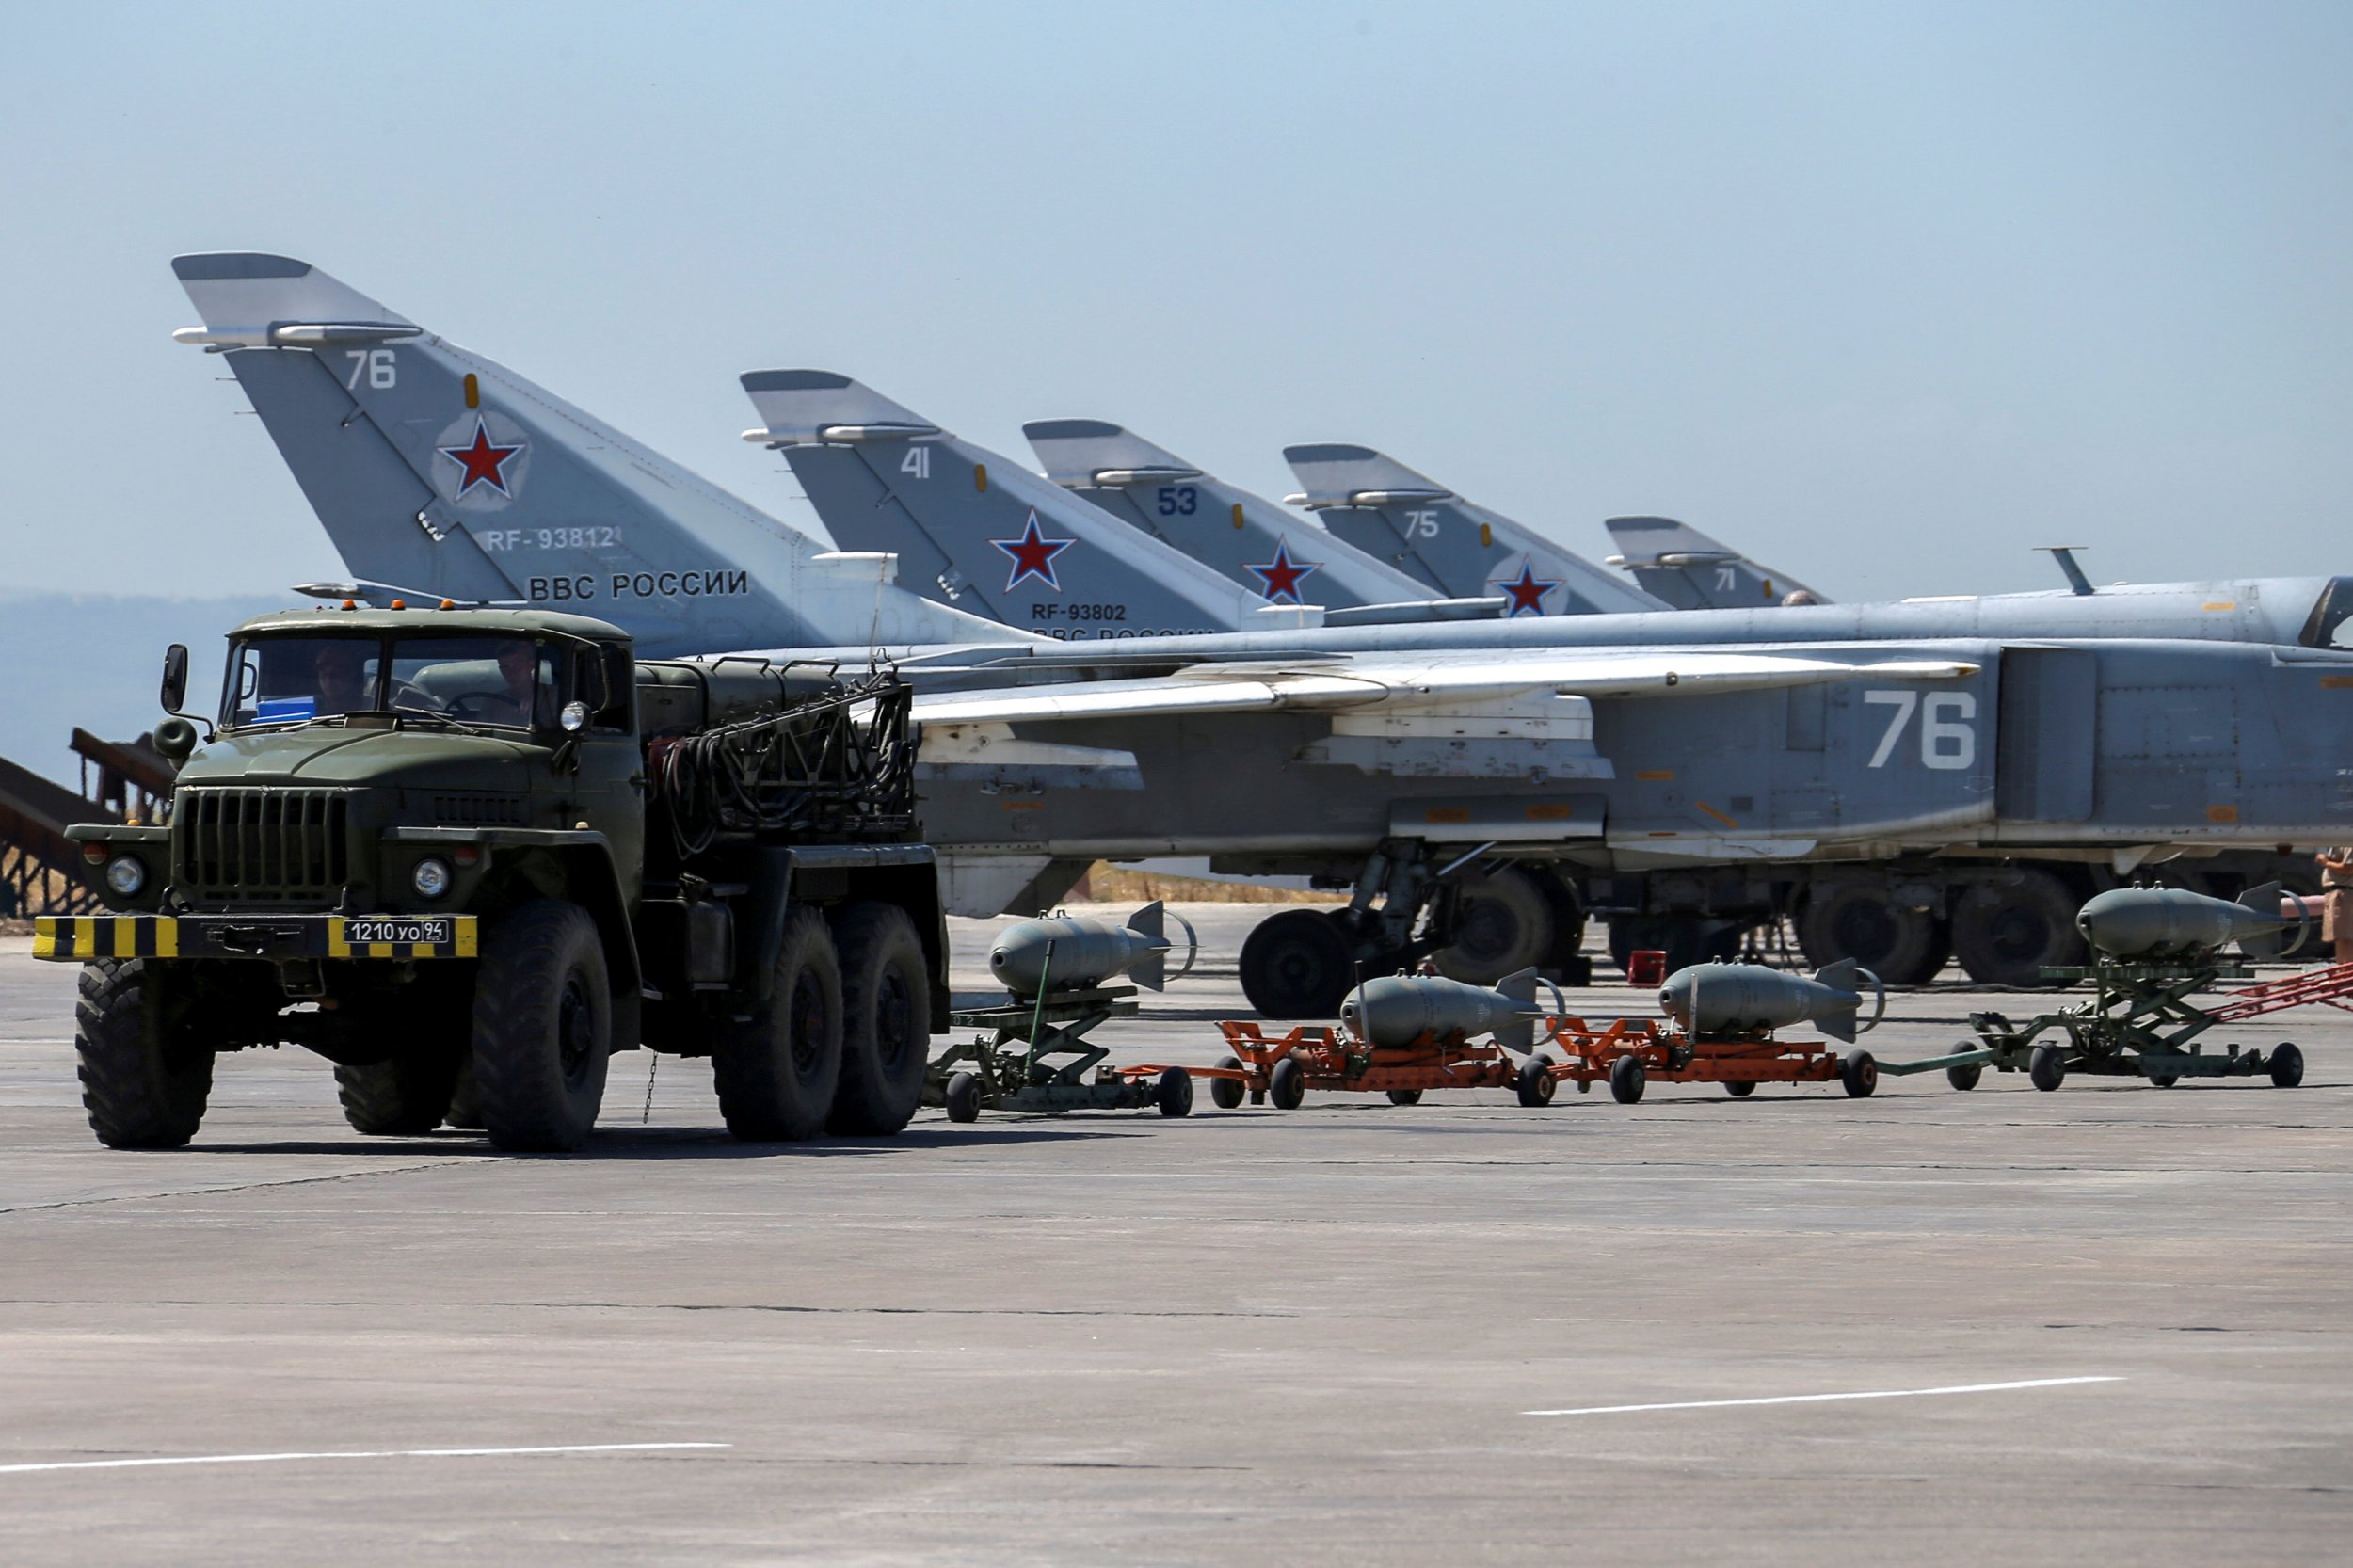 How serious are Russia's retaliatory threats toward U.S. and coalition forces in Syria?